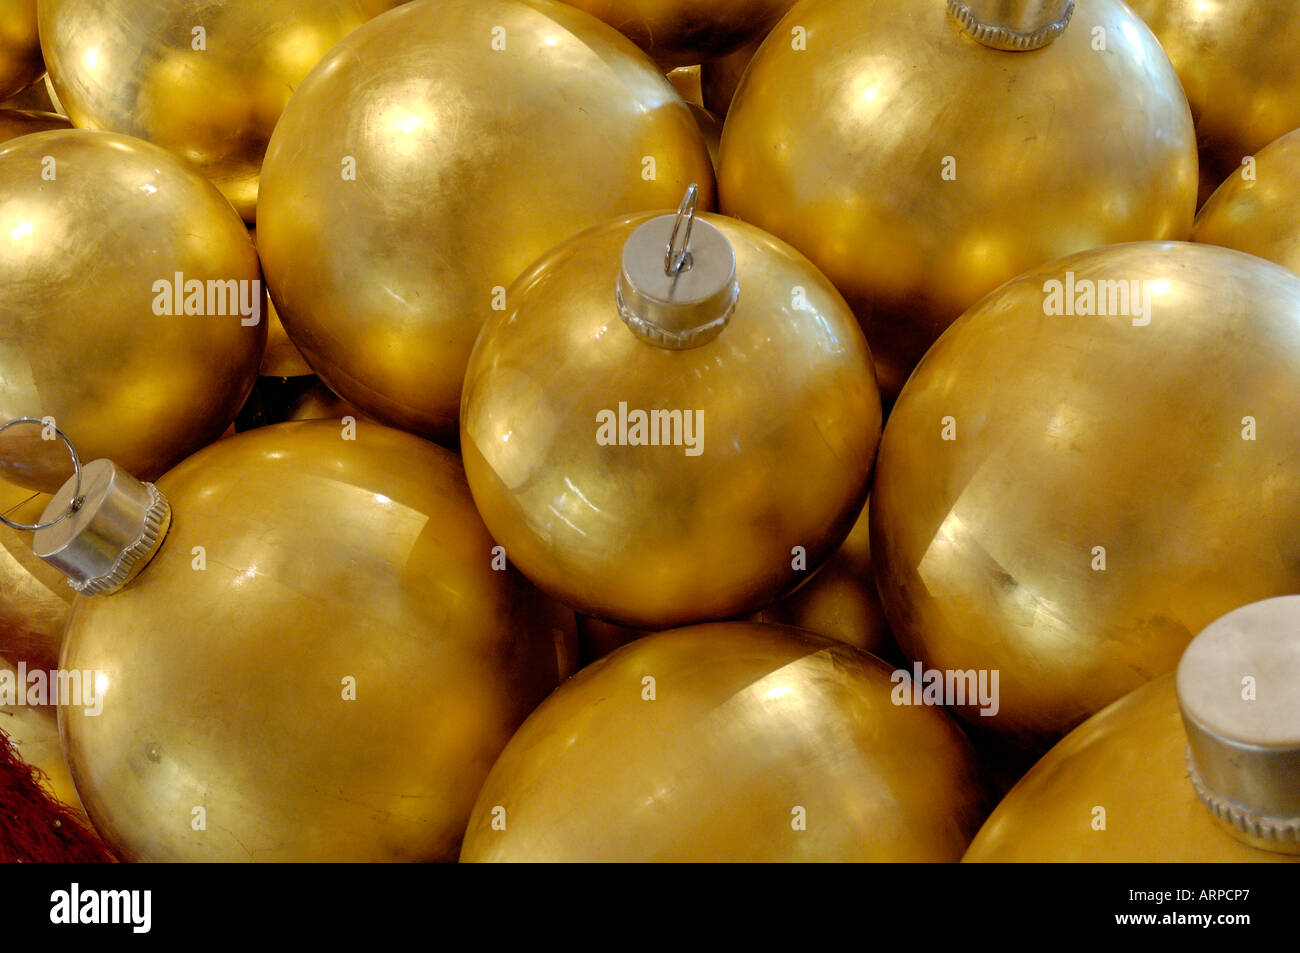 Christmas Ornaments With Names On Them